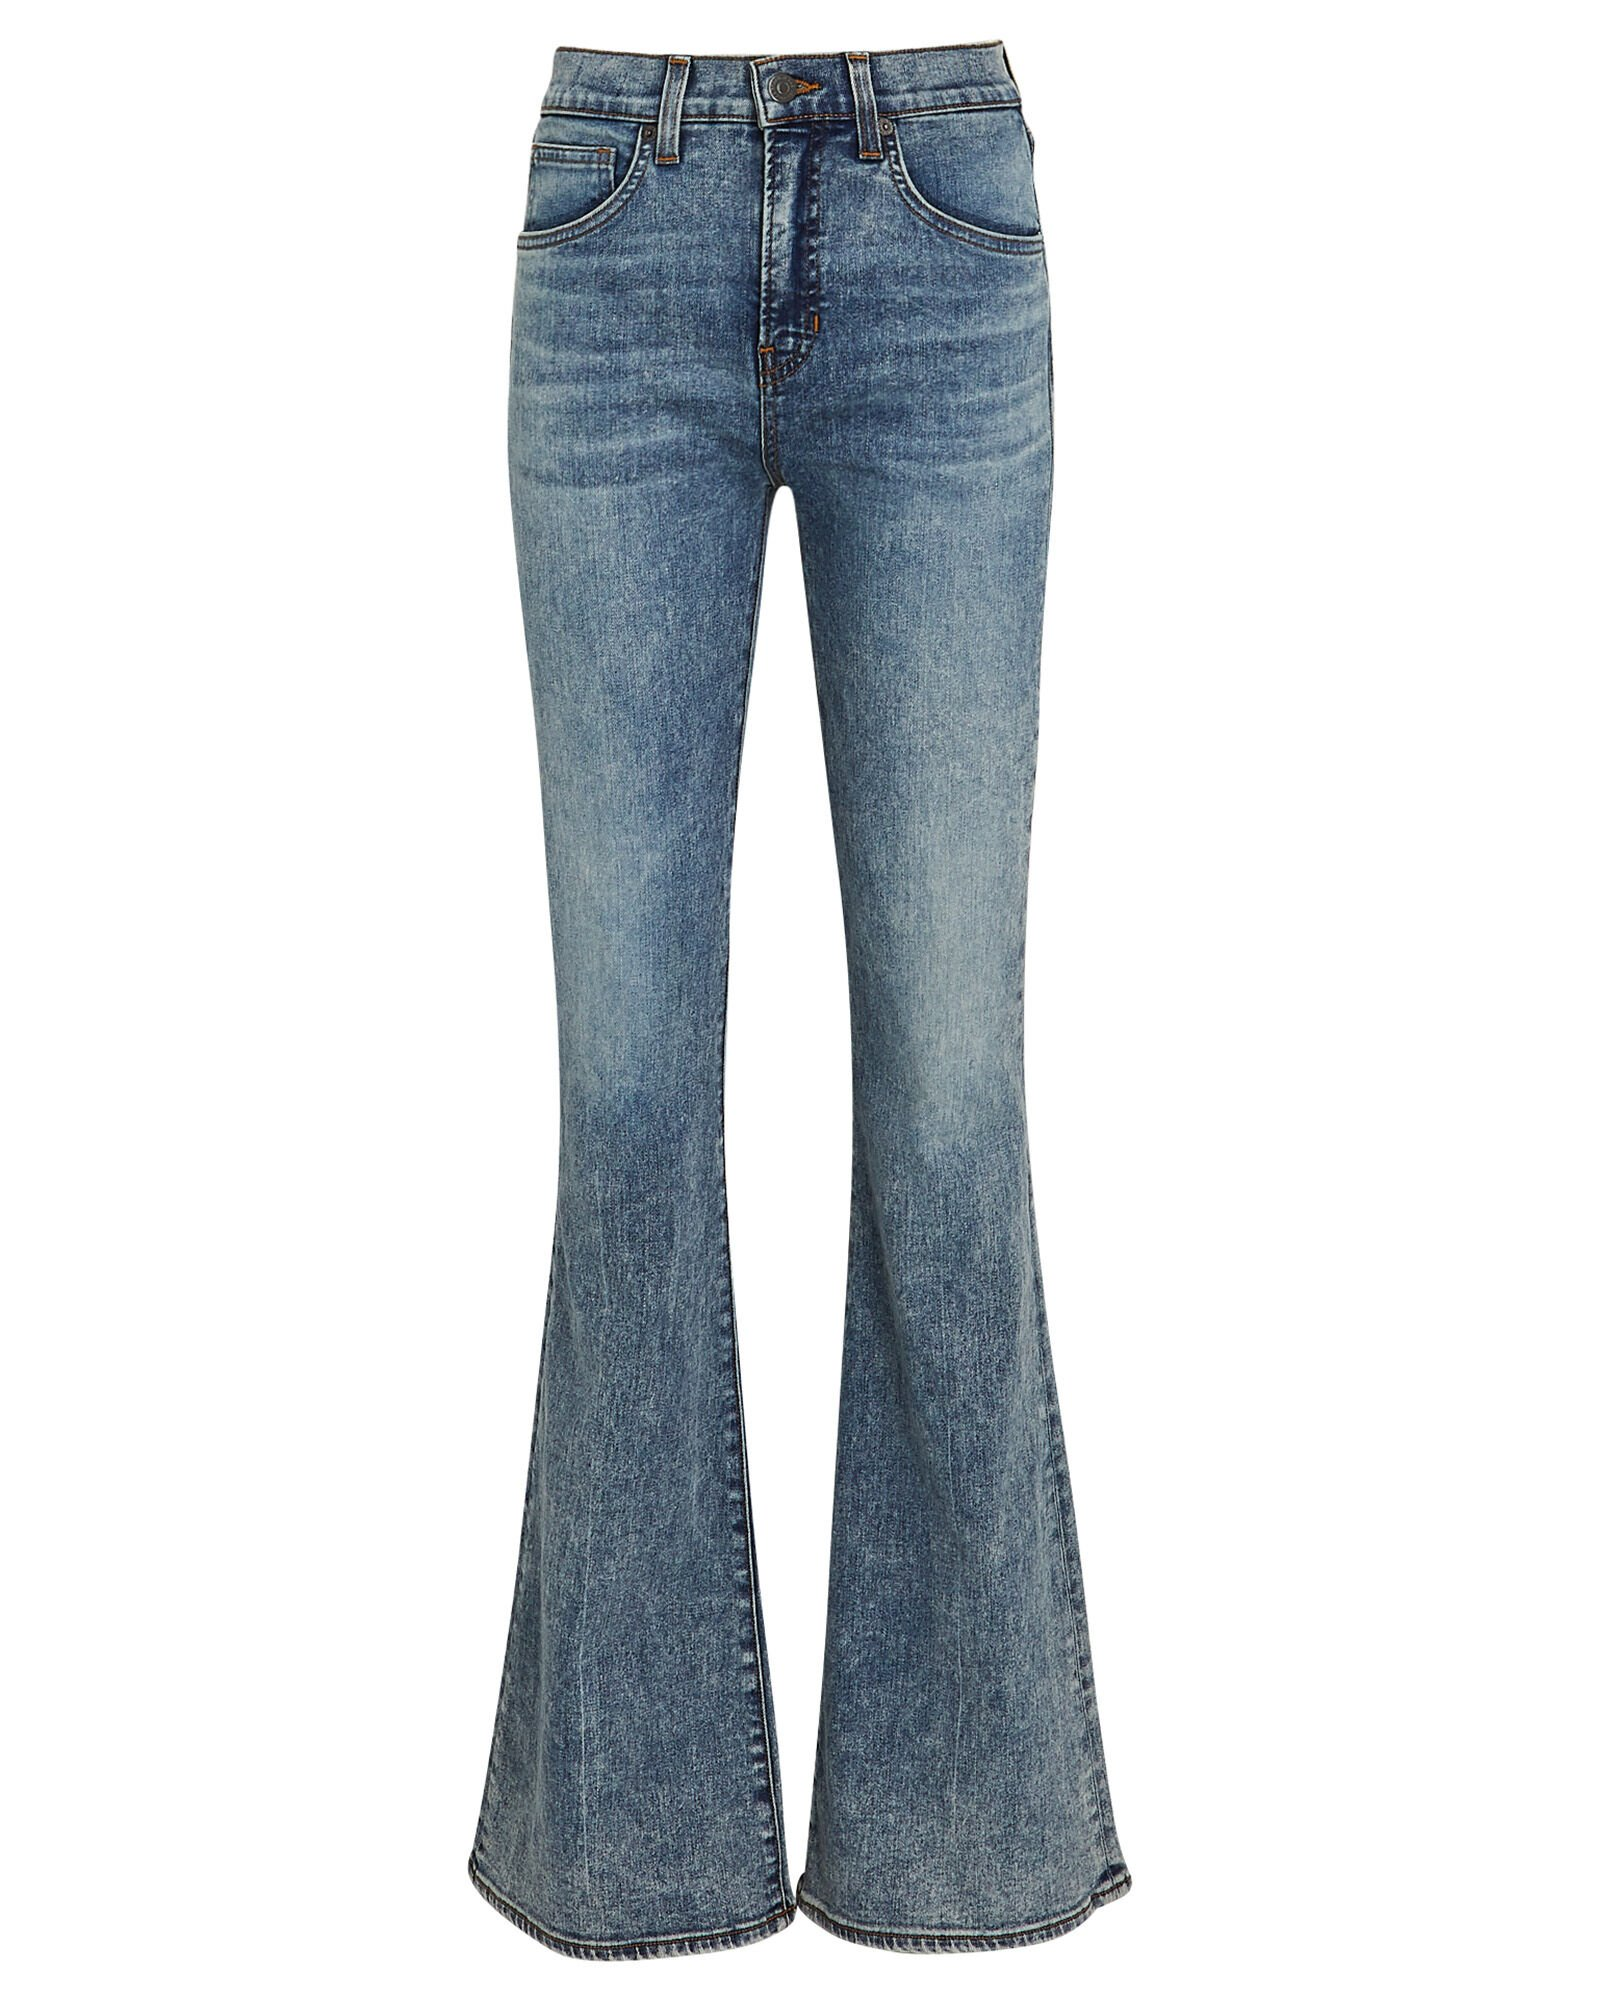 Beverly Flared High-Rise Jeans, BLUE MIST, hi-res